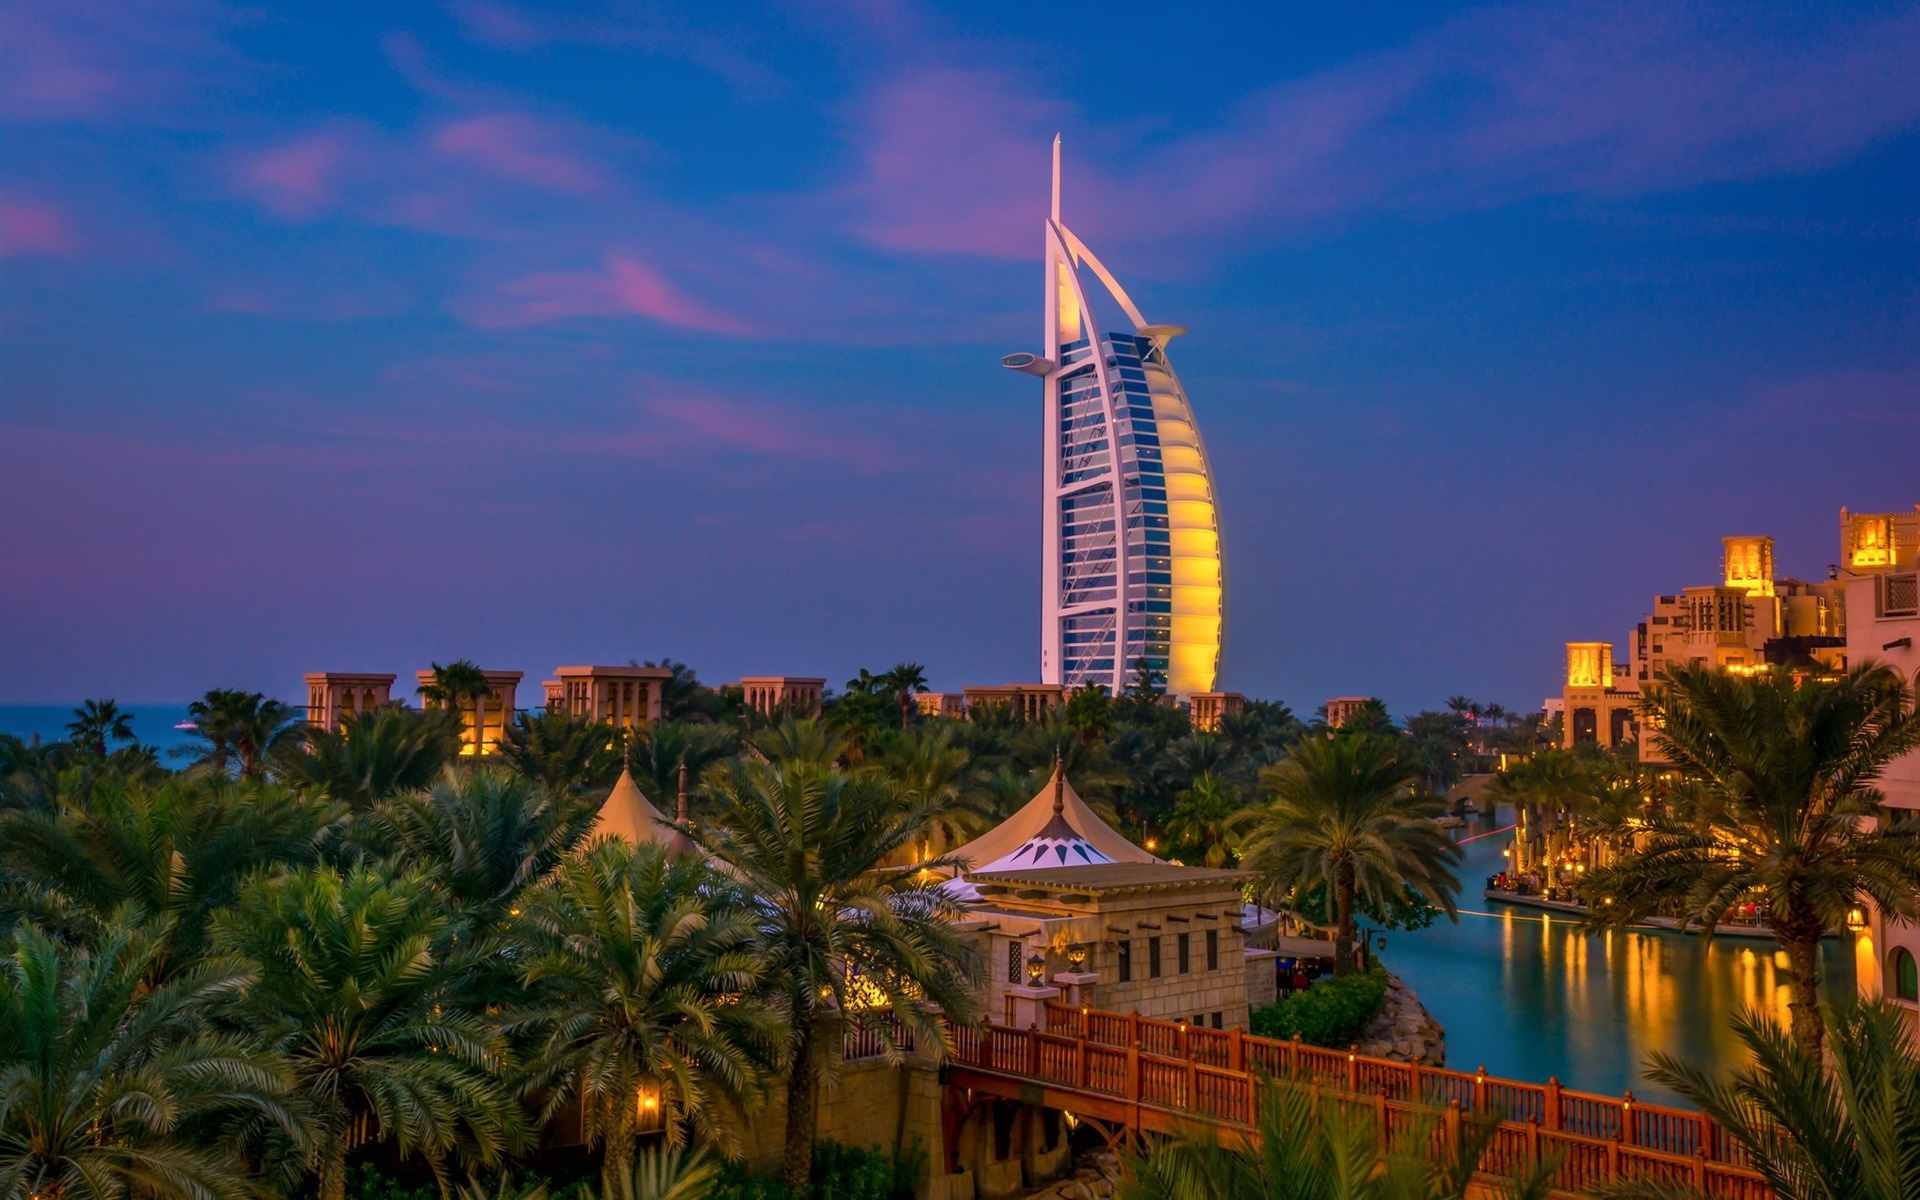 Cute Iphone 5c Wallpapers Wallpaper Dubai Night City Trees River Villa